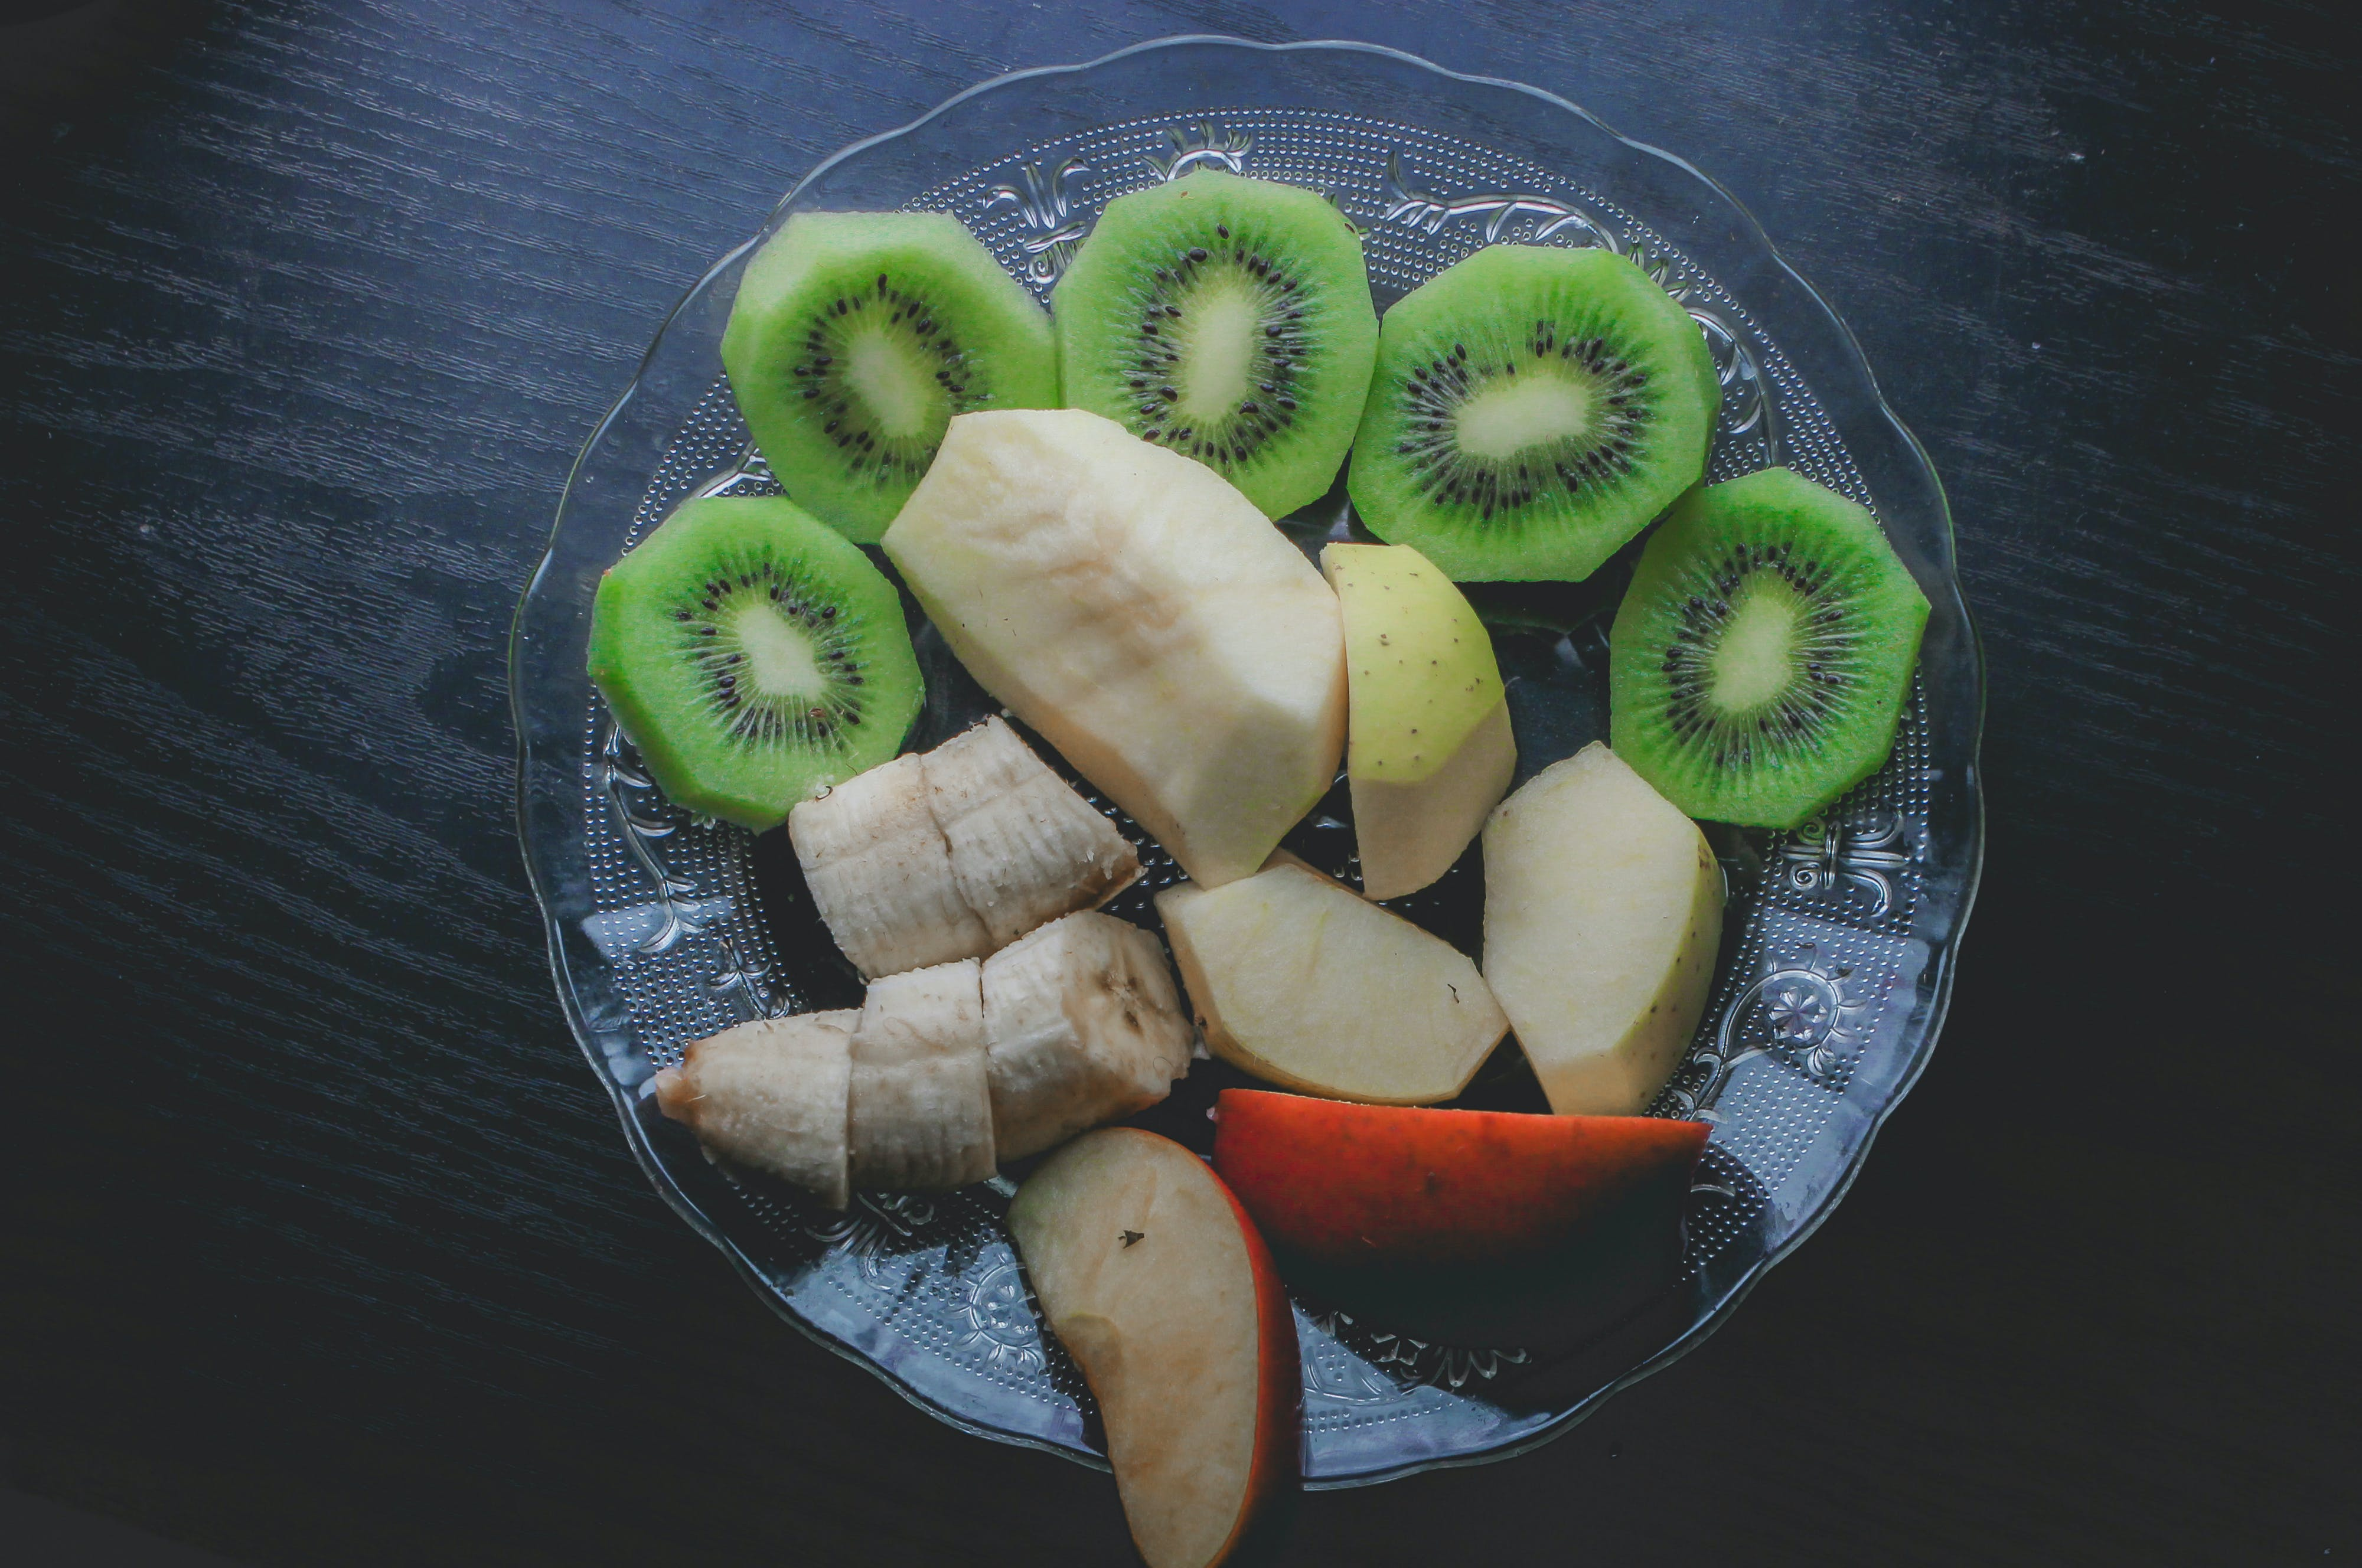 Sliced Fruits on Glass Plate